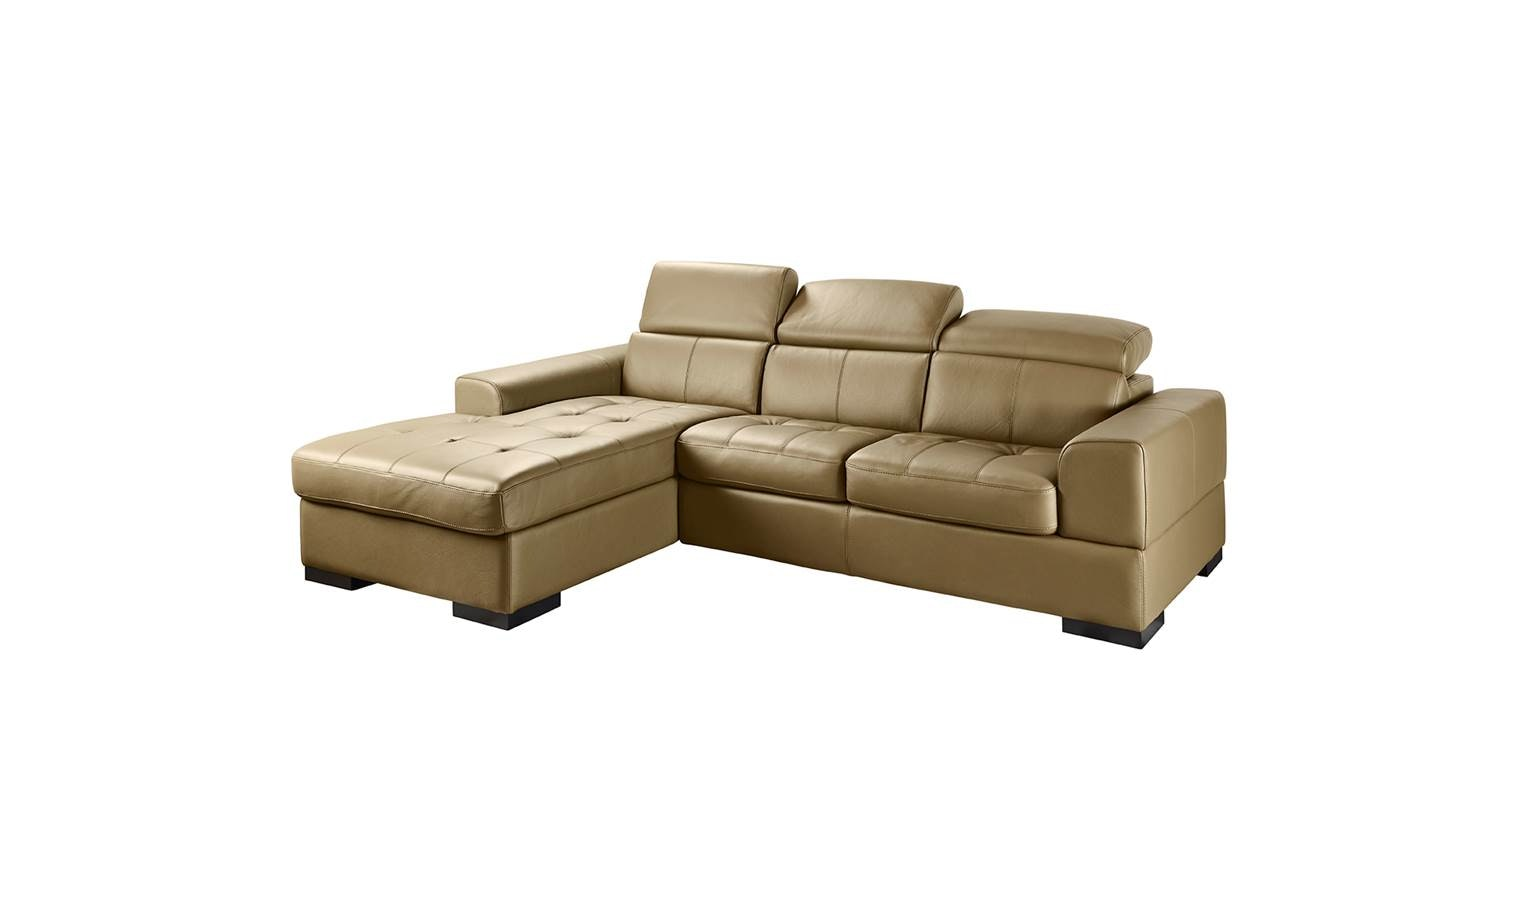 Noemi Italian Full Leather 3-Seater with Chaise